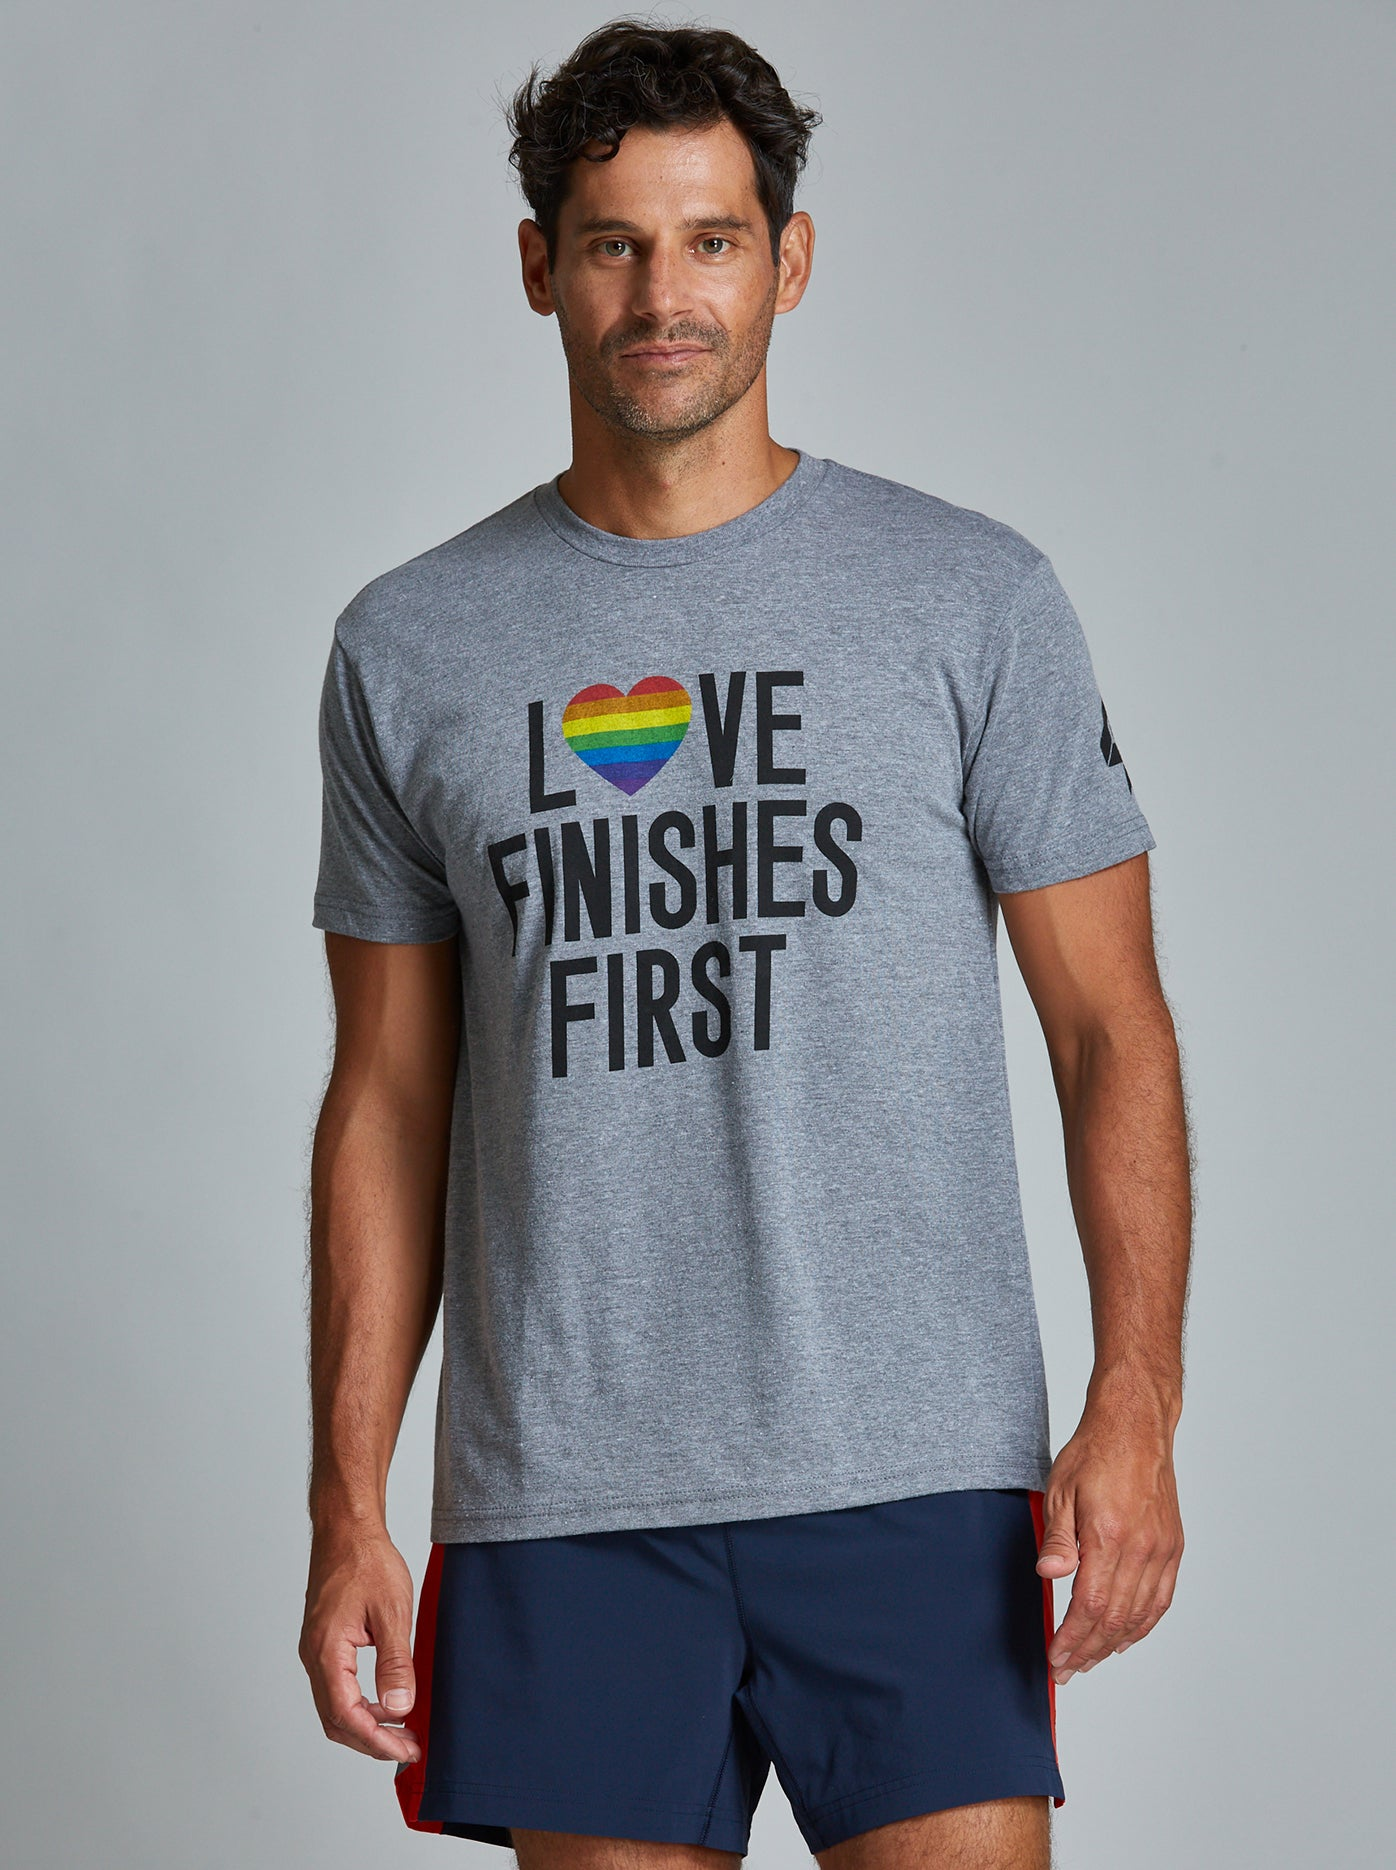 Love Finishes First